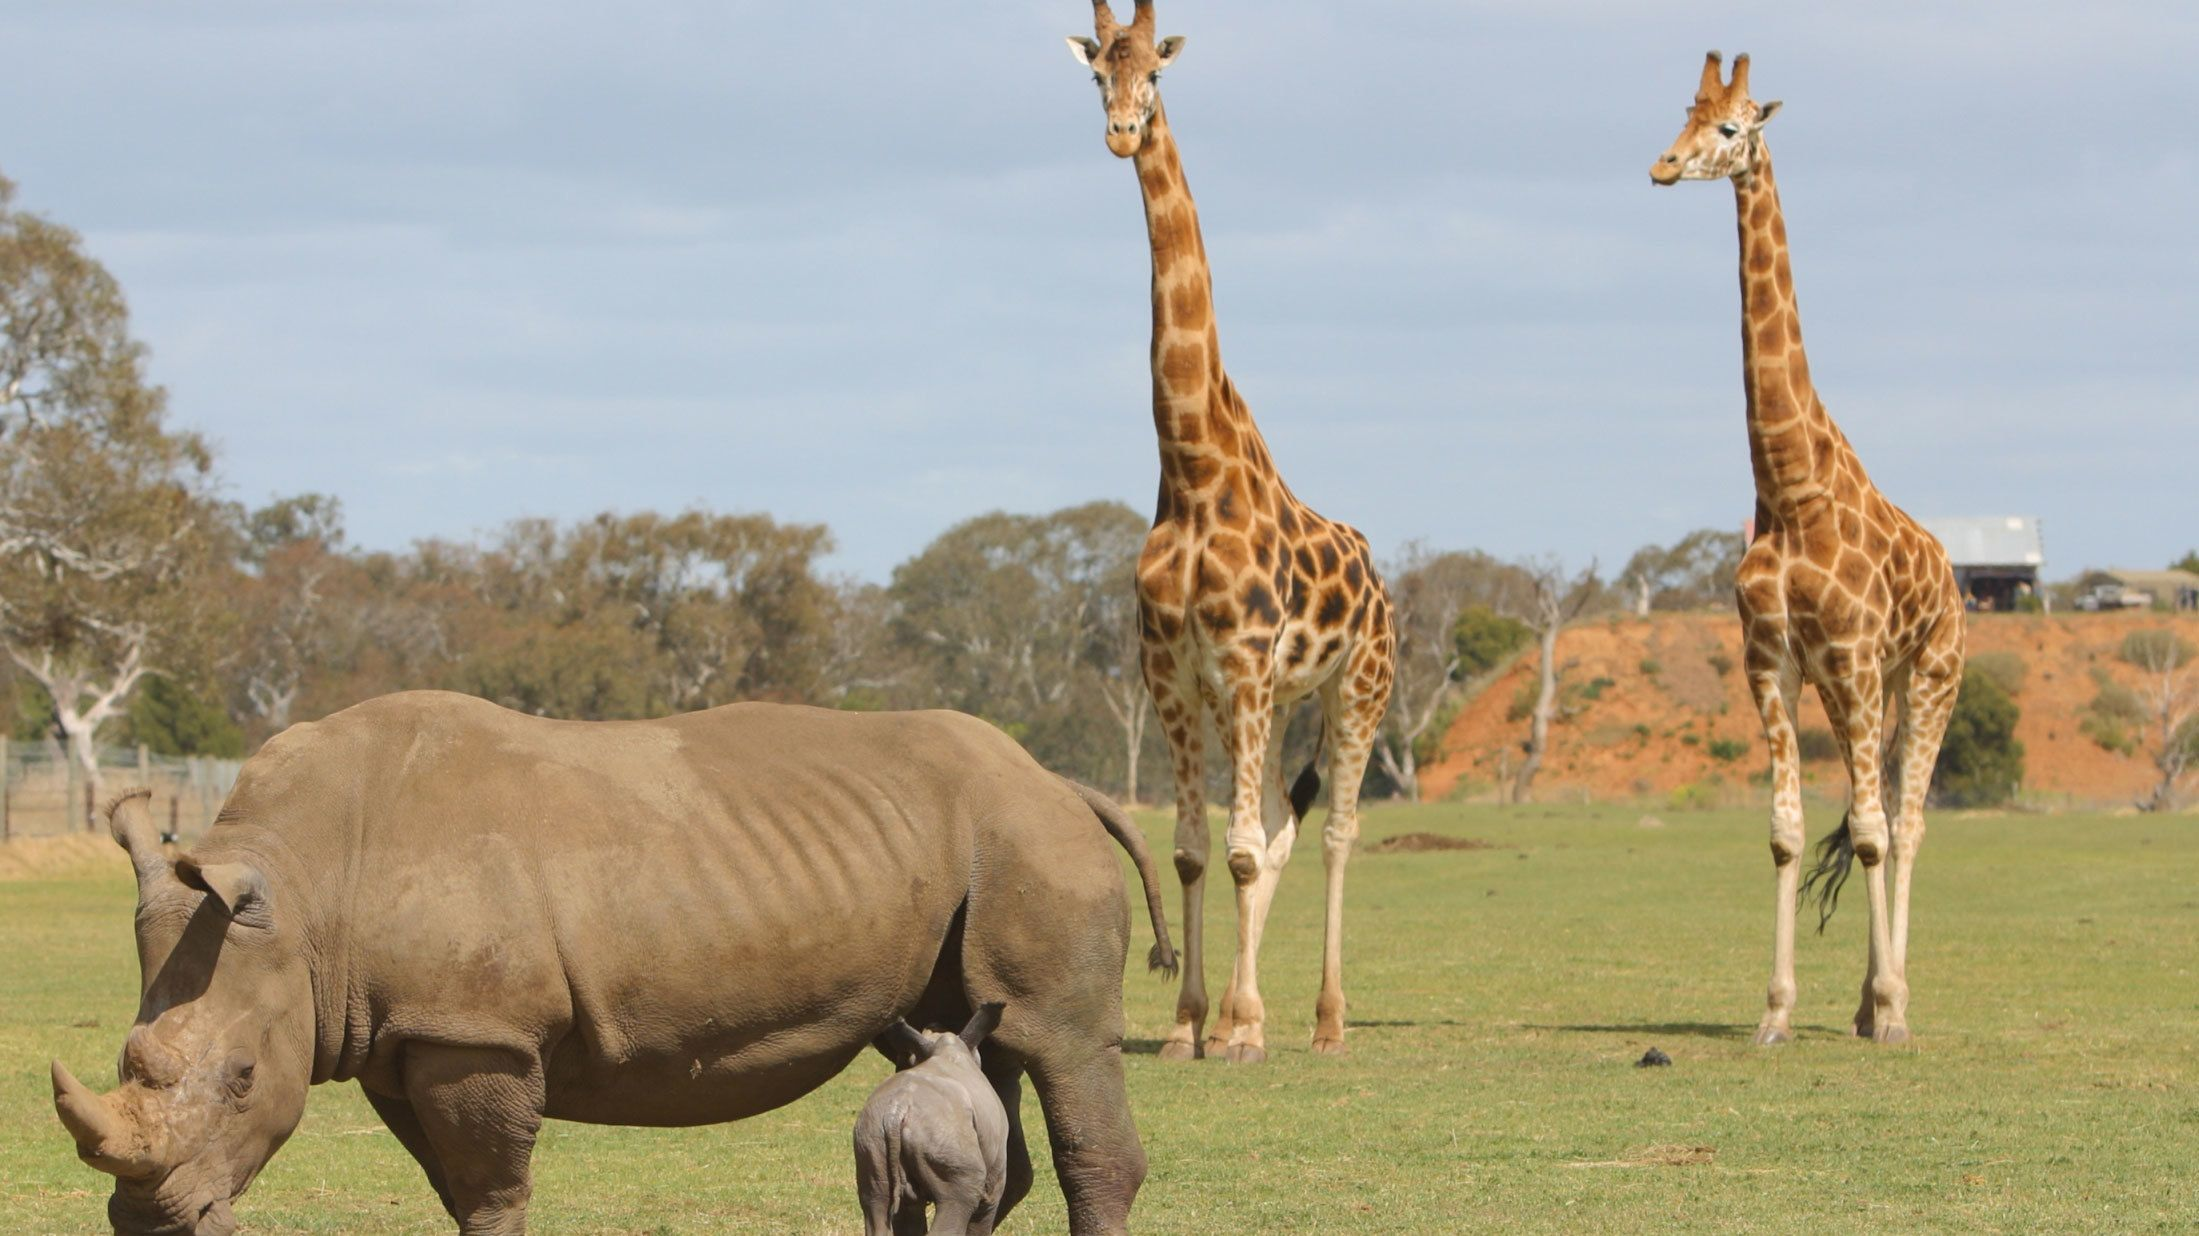 Rhino and giraffes at the Werribee Open Range Zoo